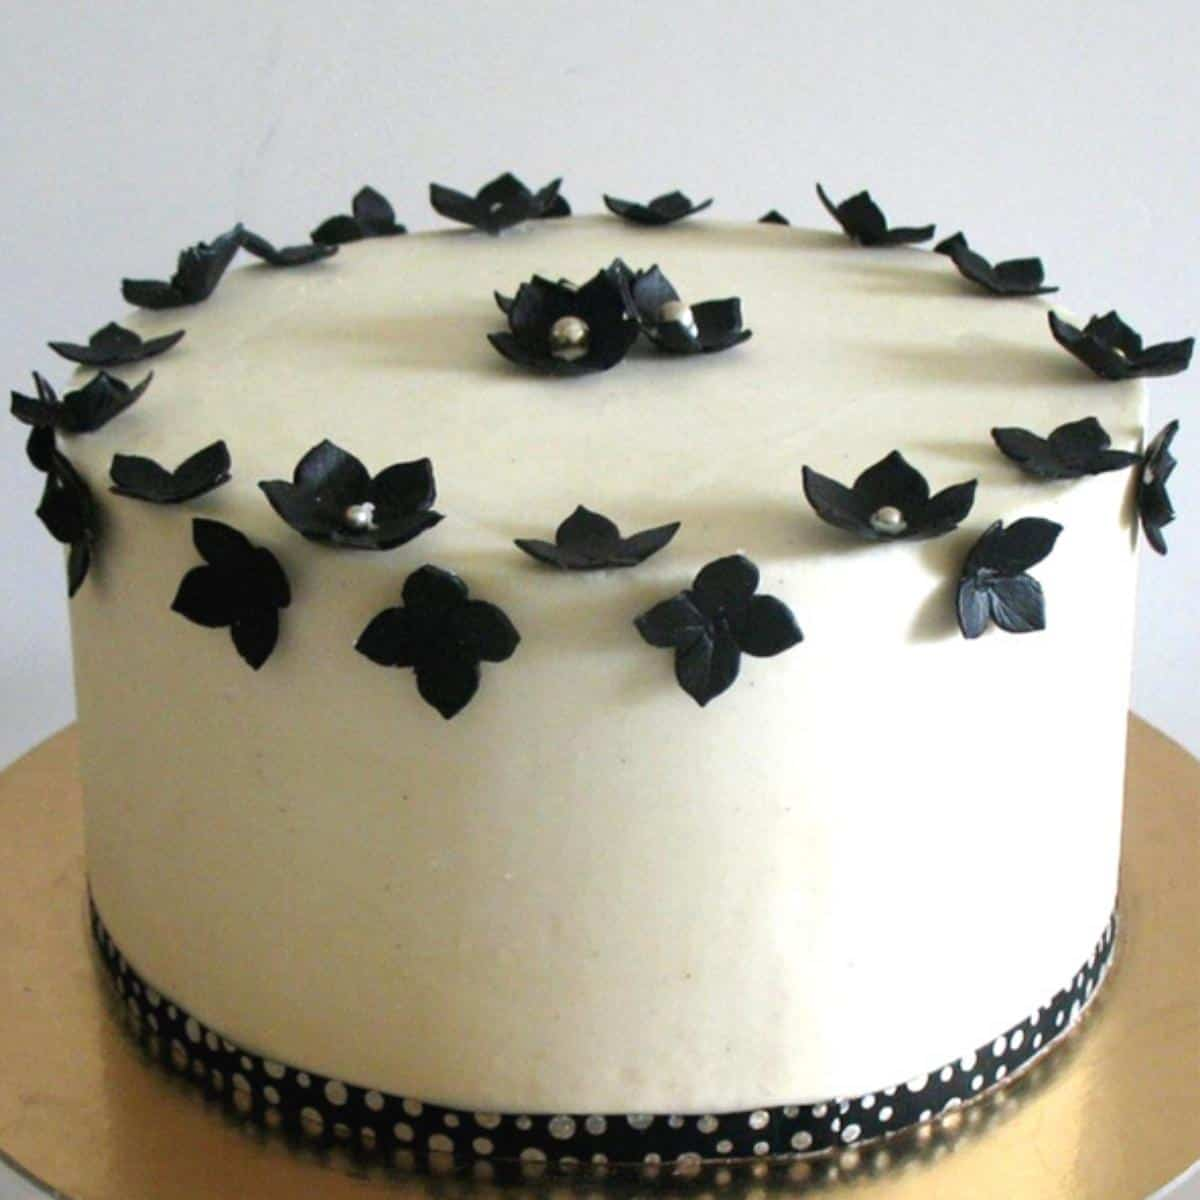 A buttercream frosted cake with American buttercream.